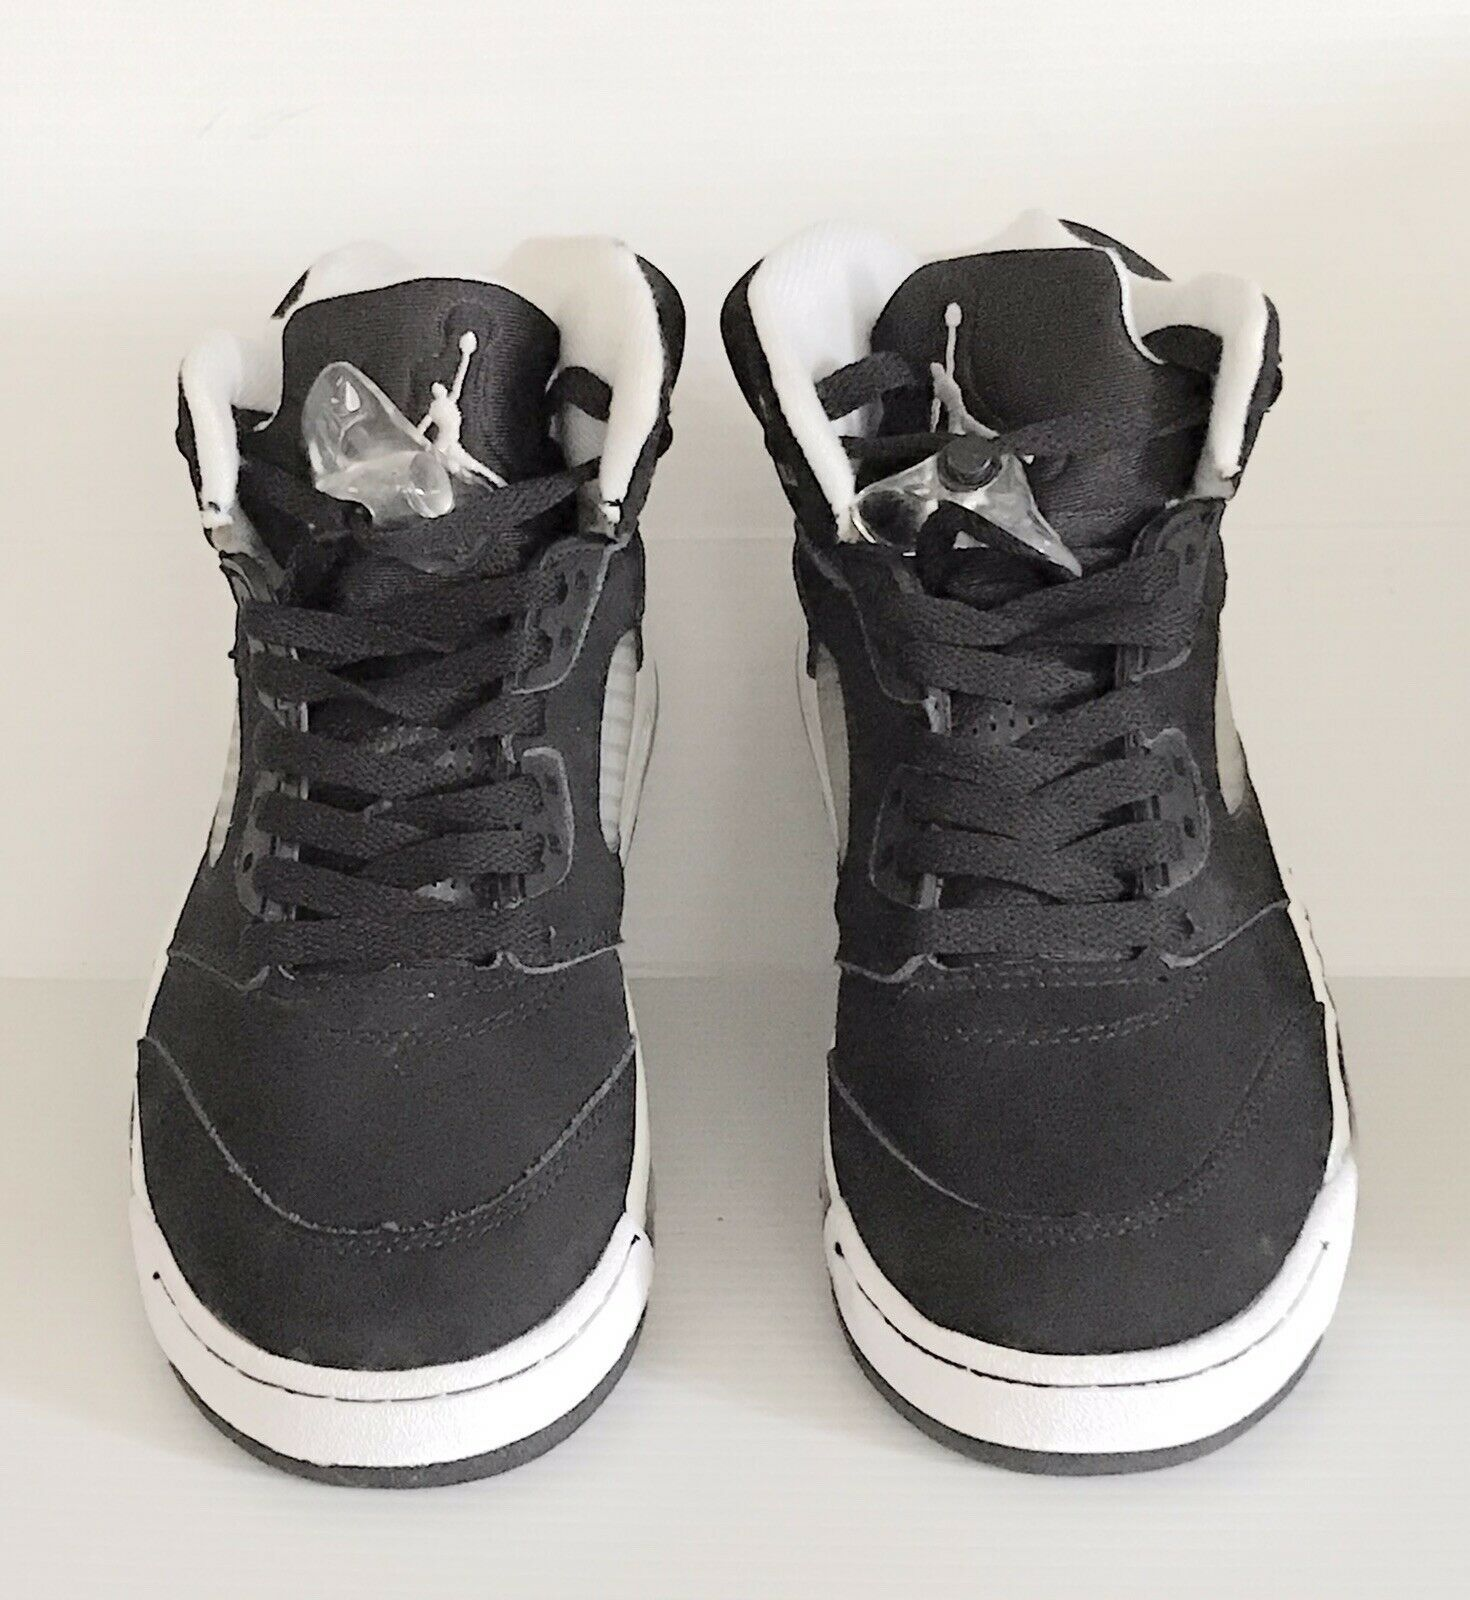 NIKE AIR JORDAN V 5 RETRO OREO BLACK - USED - GOOD CONDITION - 136027-035 Sz 7